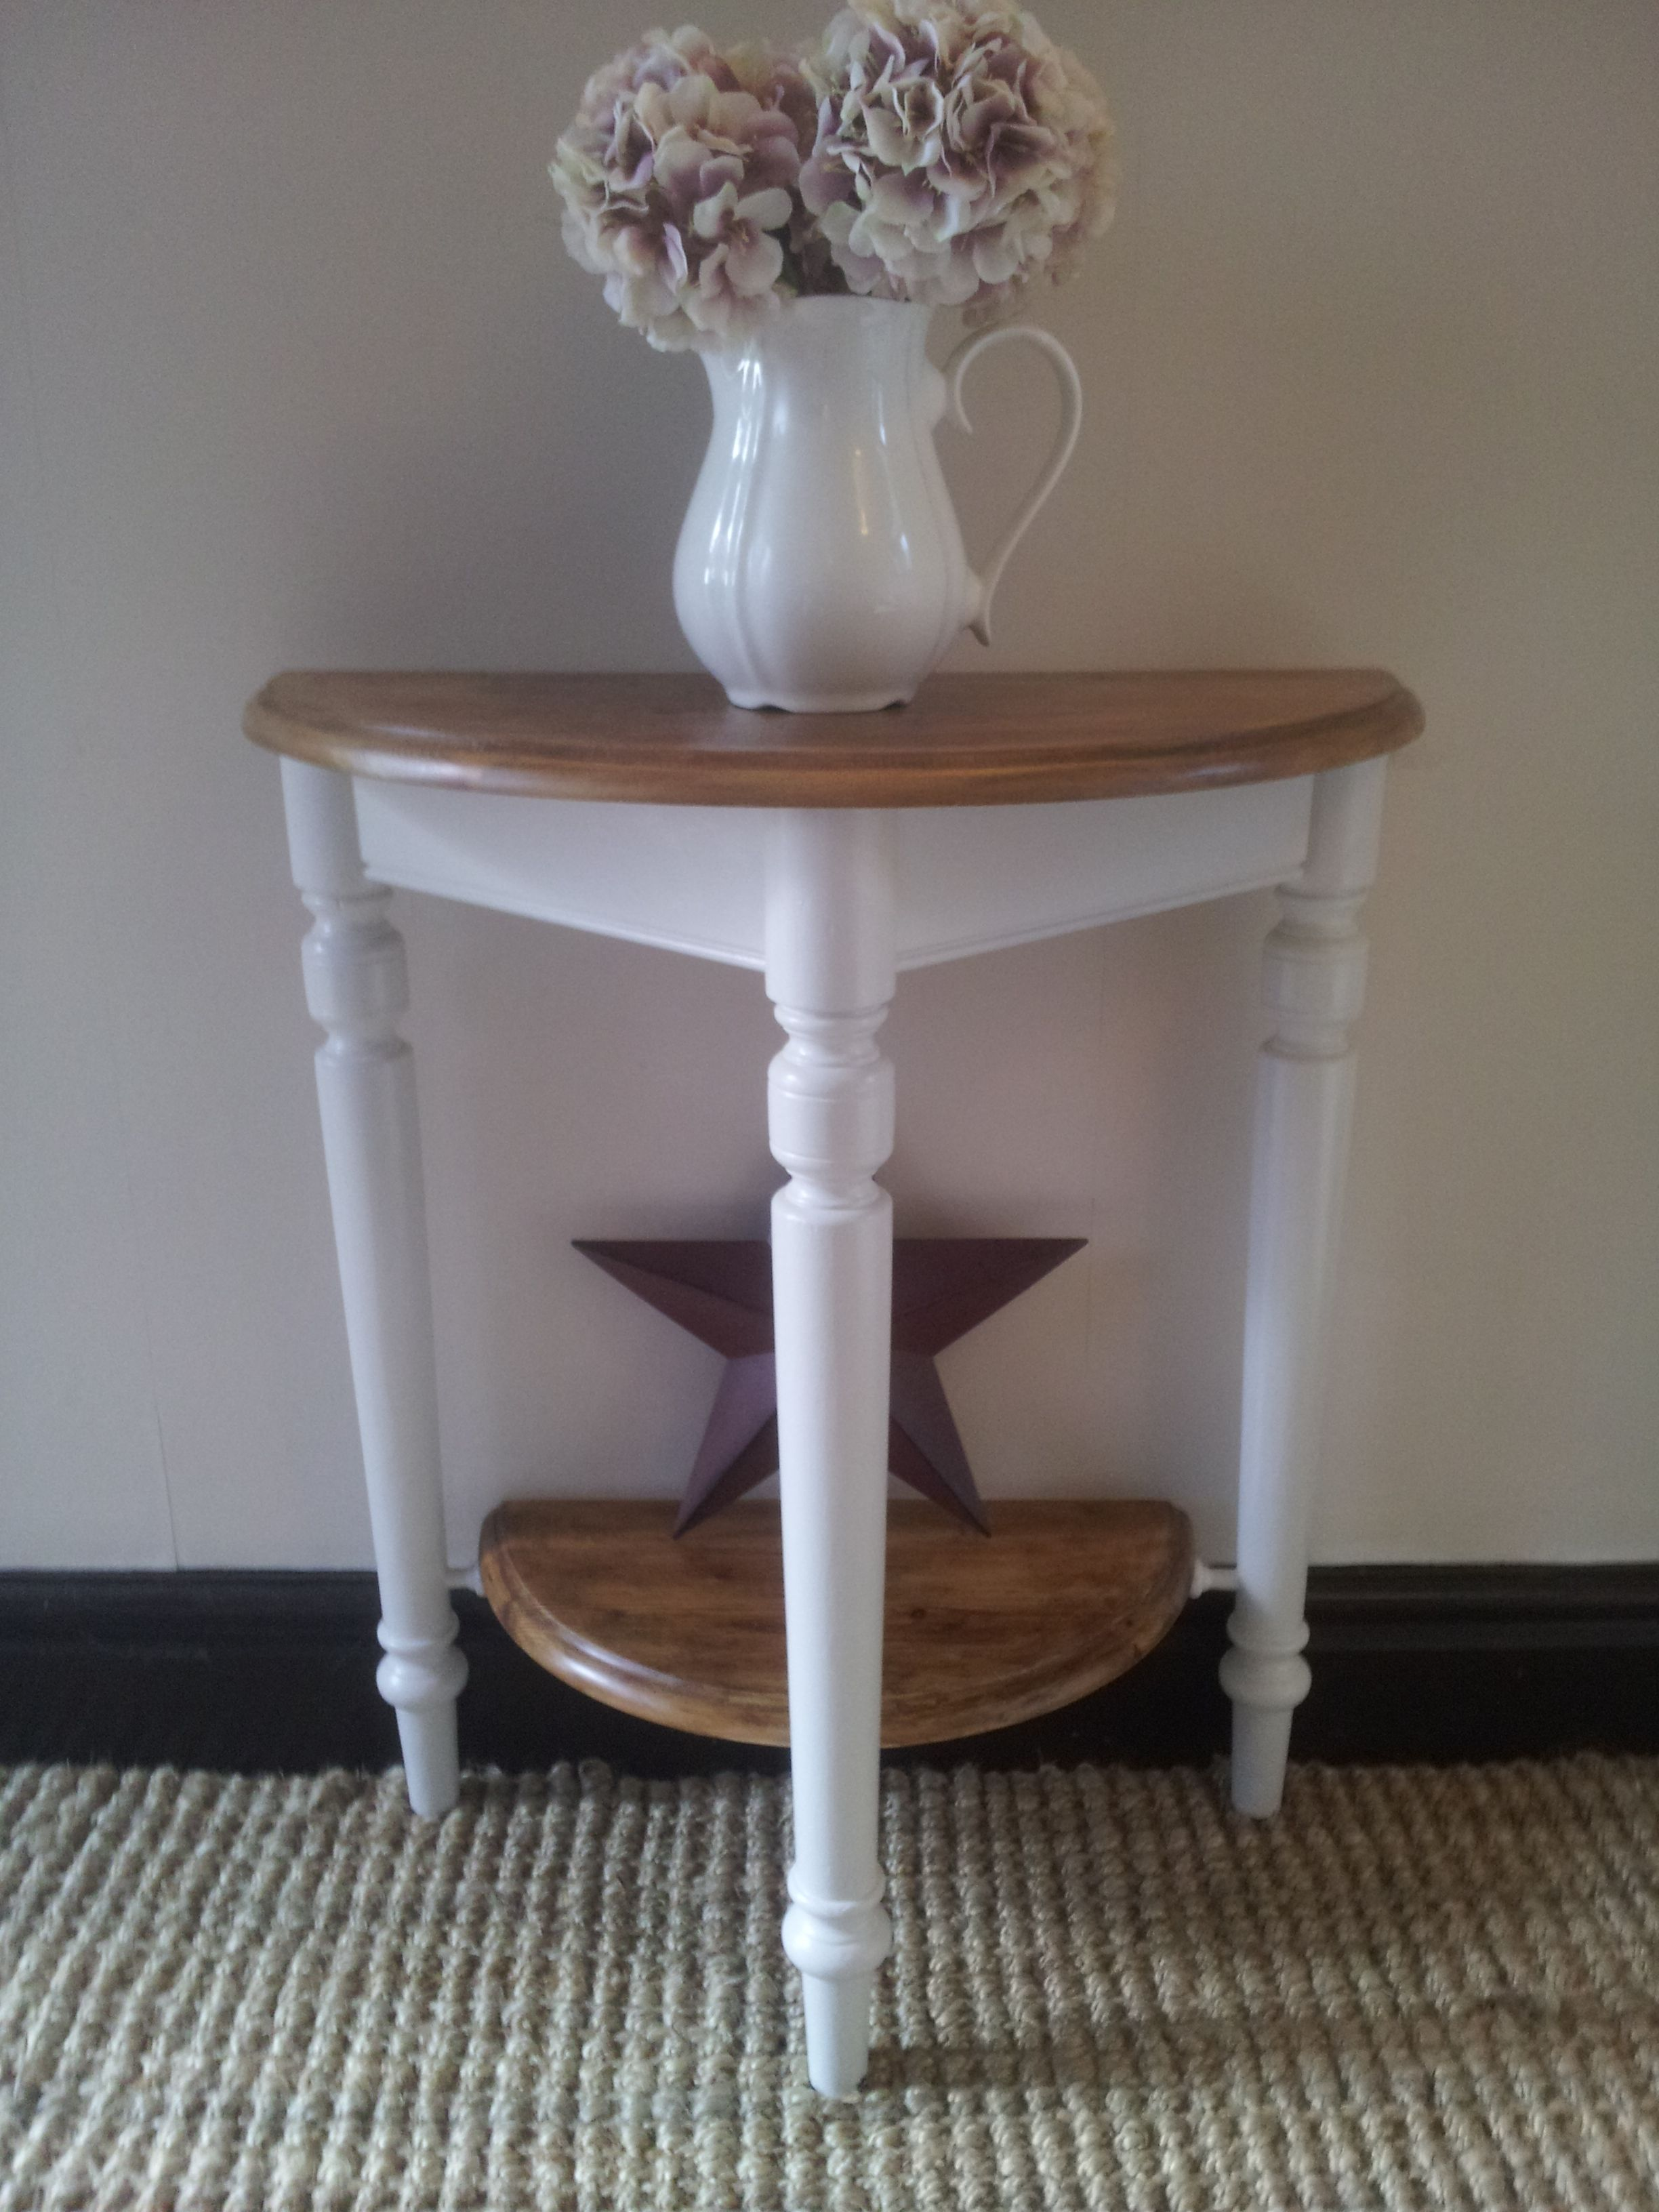 L Painted With Skimming Stone By Farrow And Ball Cute Hallway Table Https